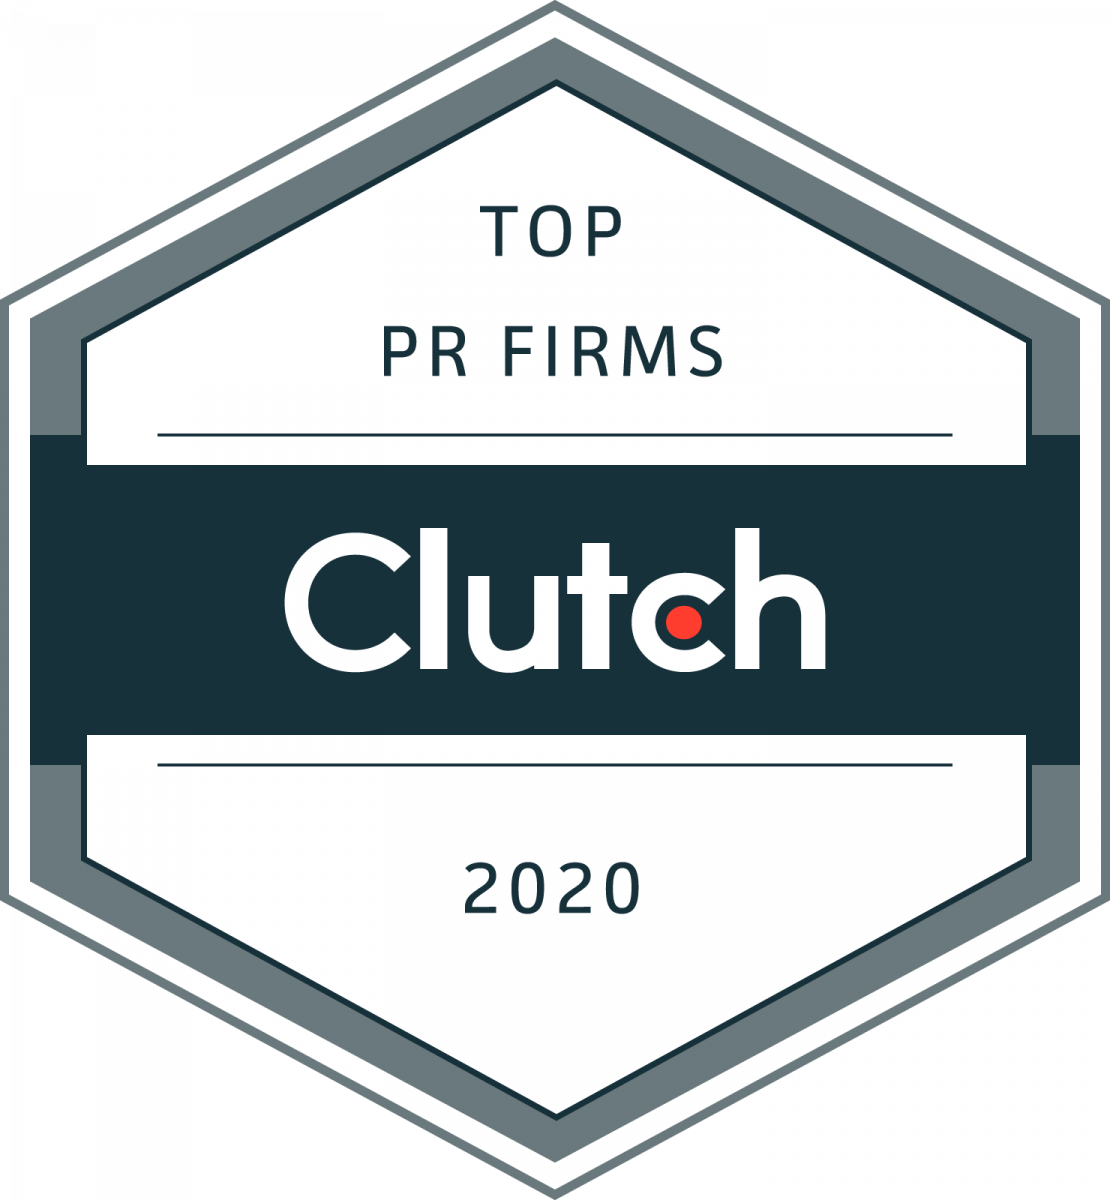 Top PR Firms 2020 Clutch